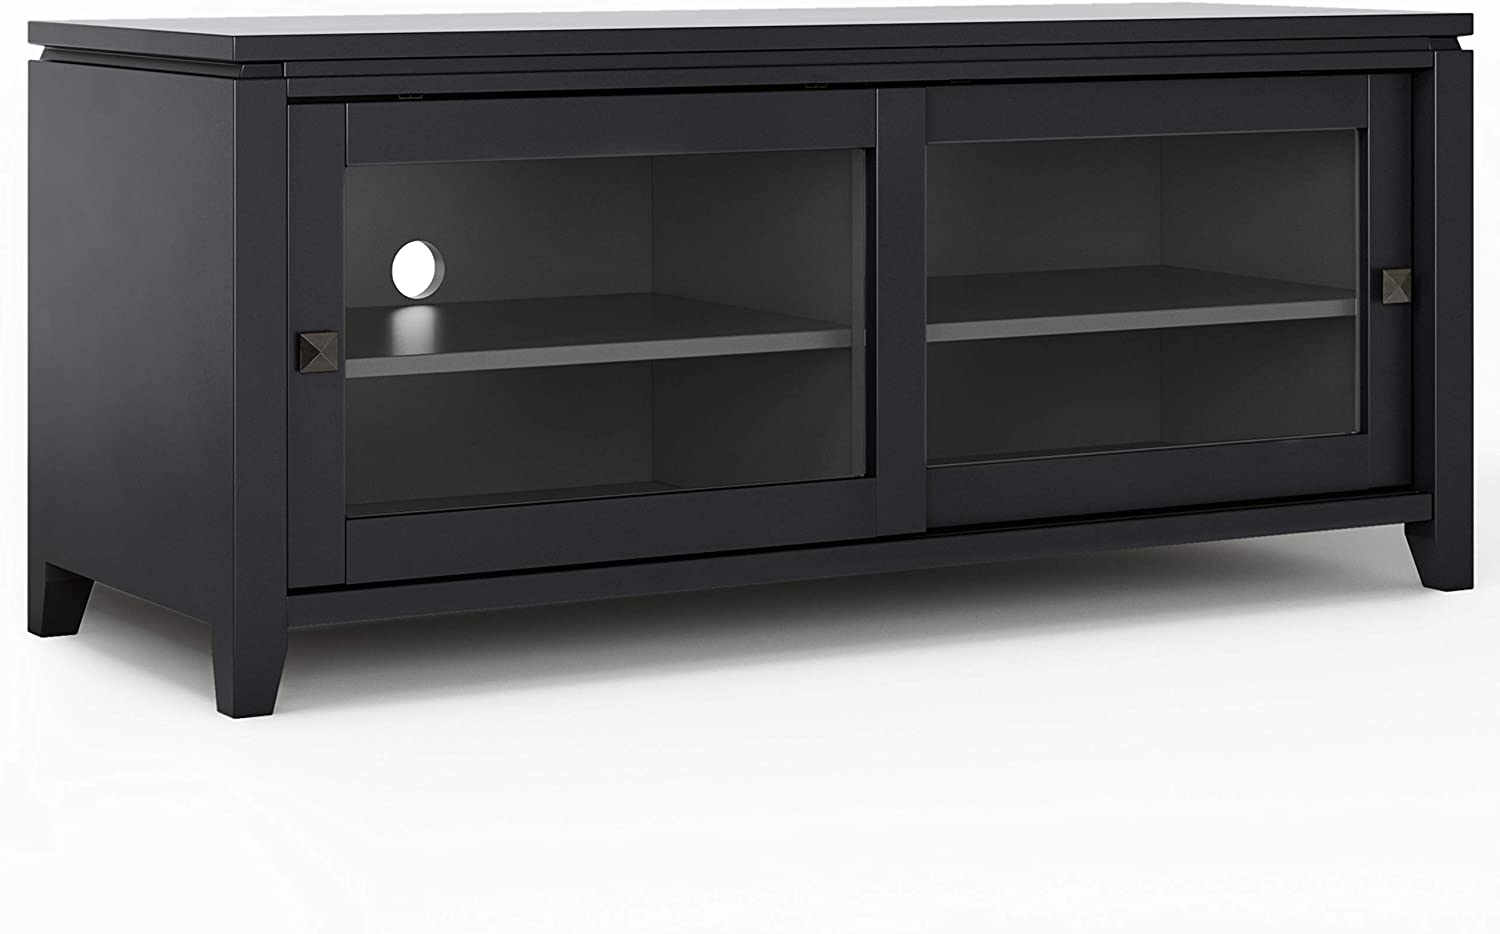 Cosmopolitan Solid Wood Universal Tv Media Stand, 48 Inch Inside Most Recent Claudia Brass Effect Wide Tv Stands (View 7 of 14)